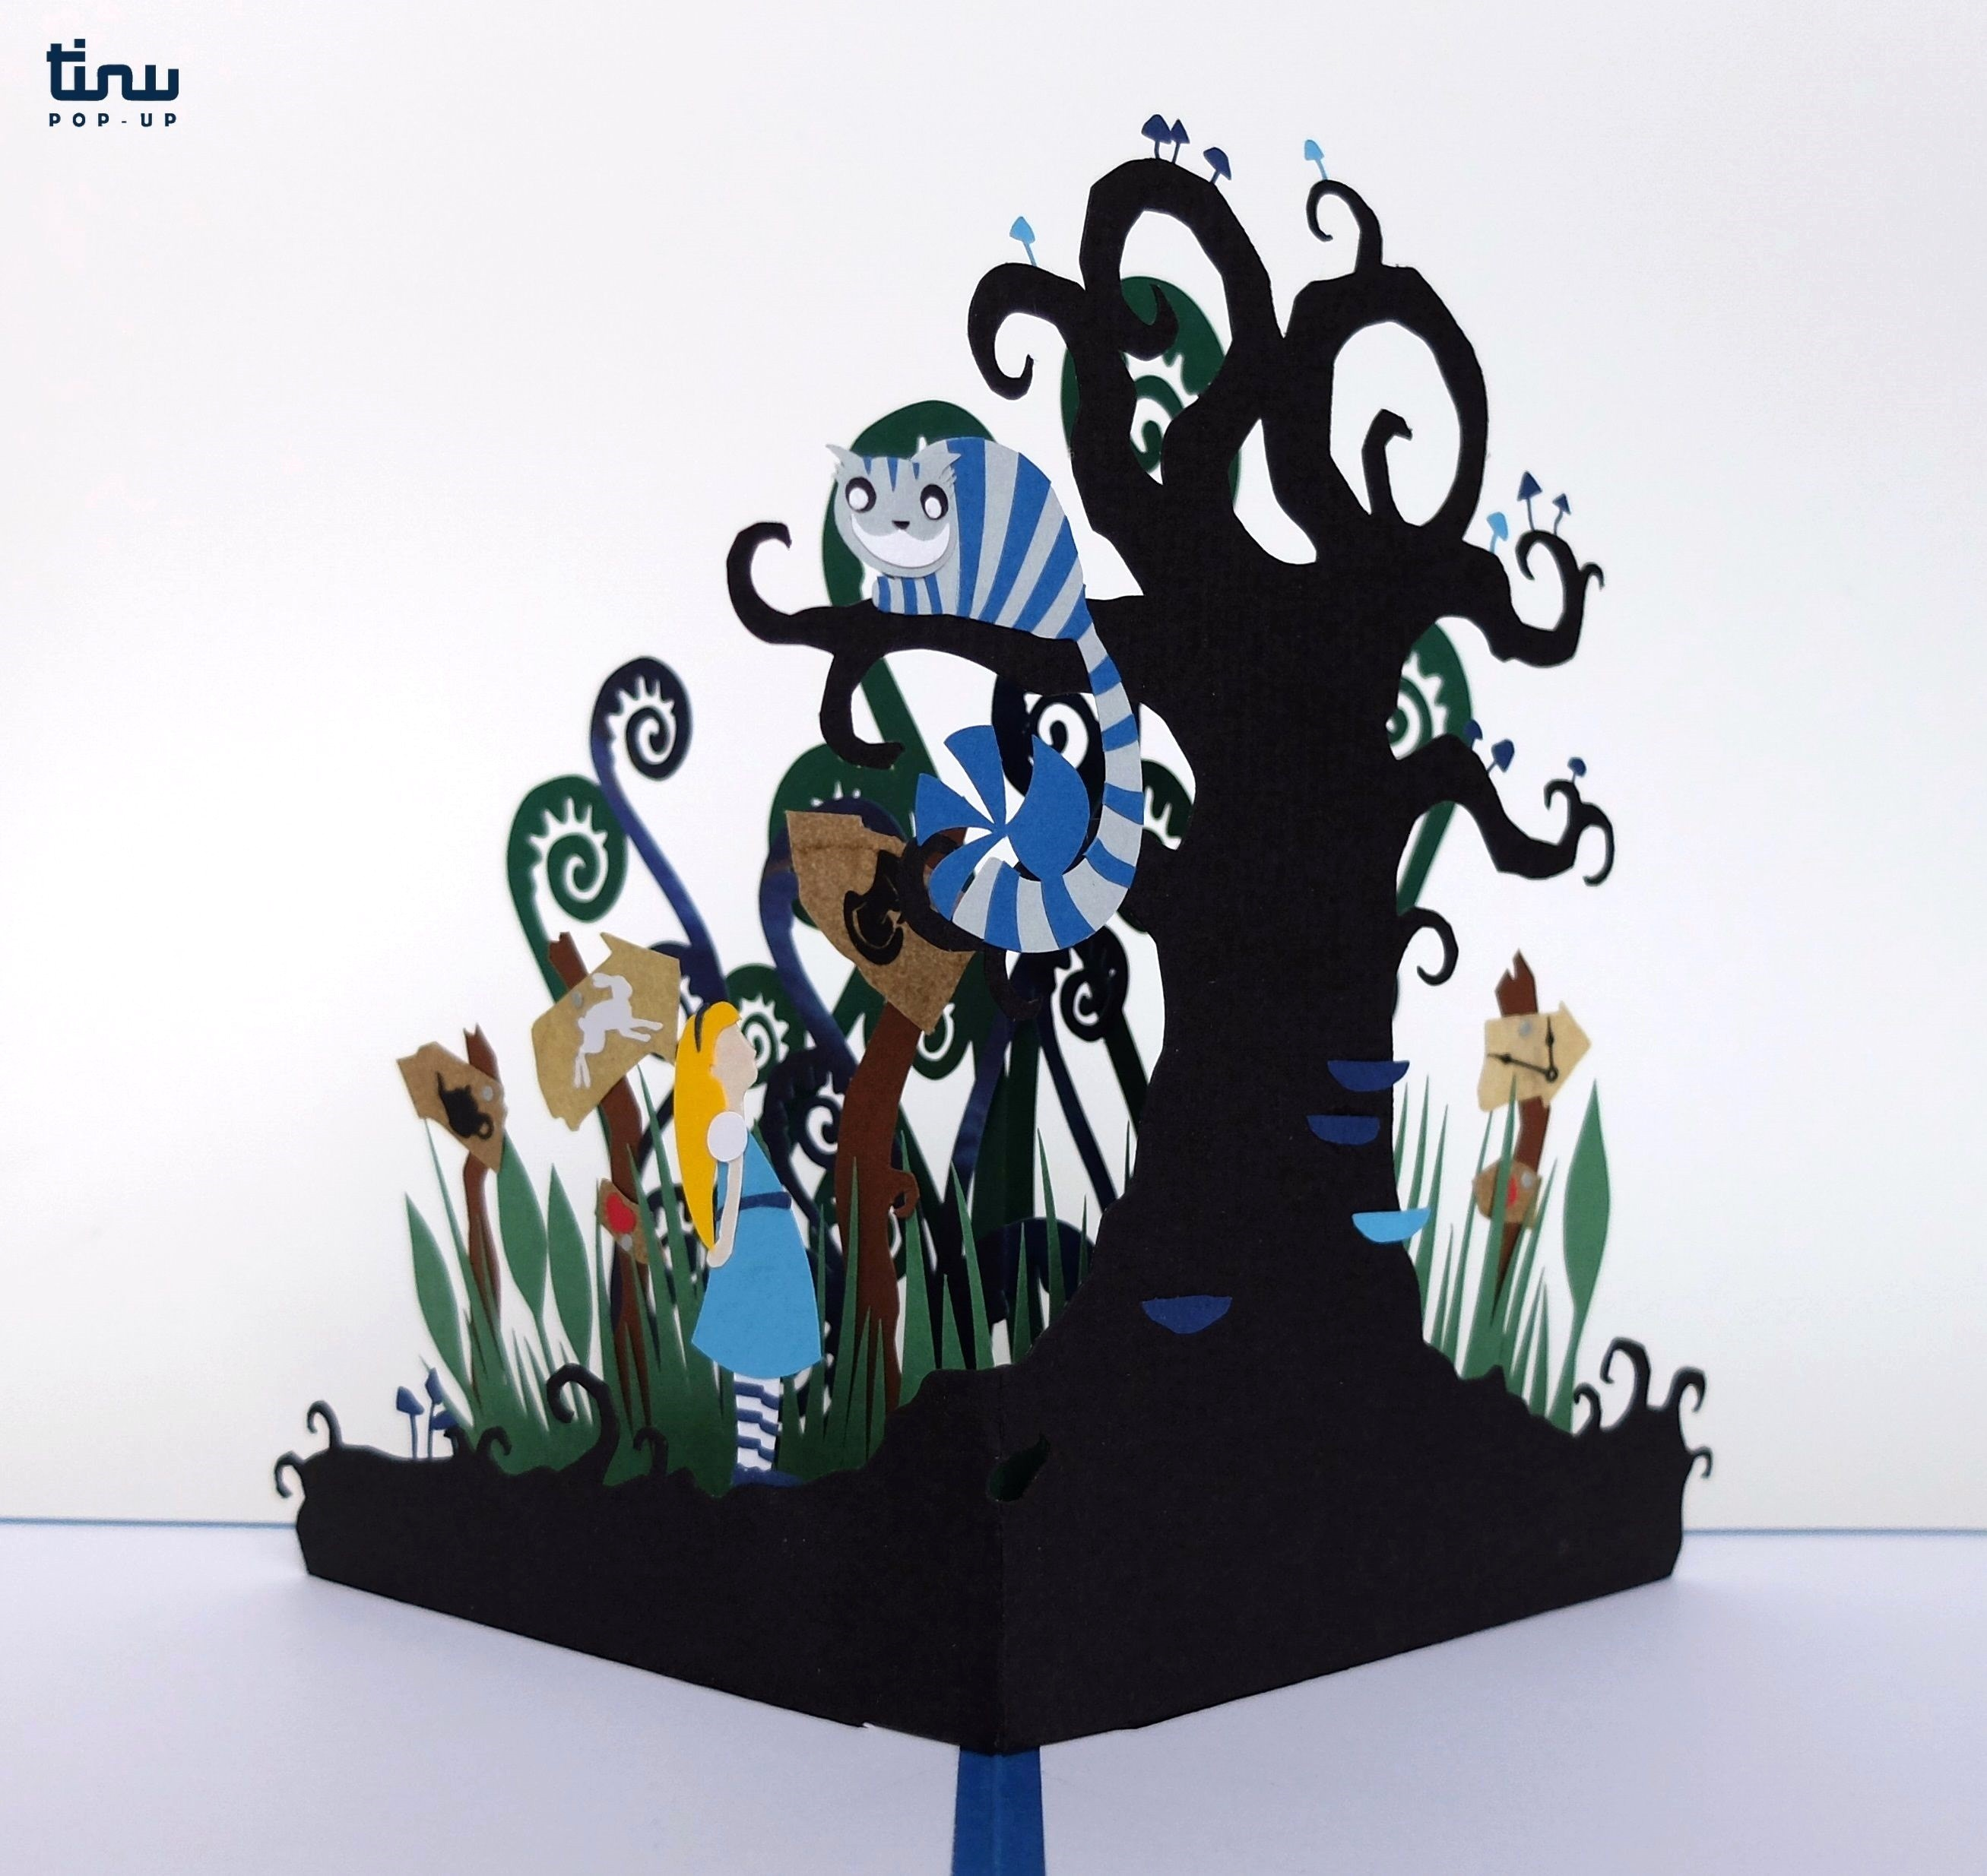 tinu deluxe alice cheshire carroll papier paper 3D card popup